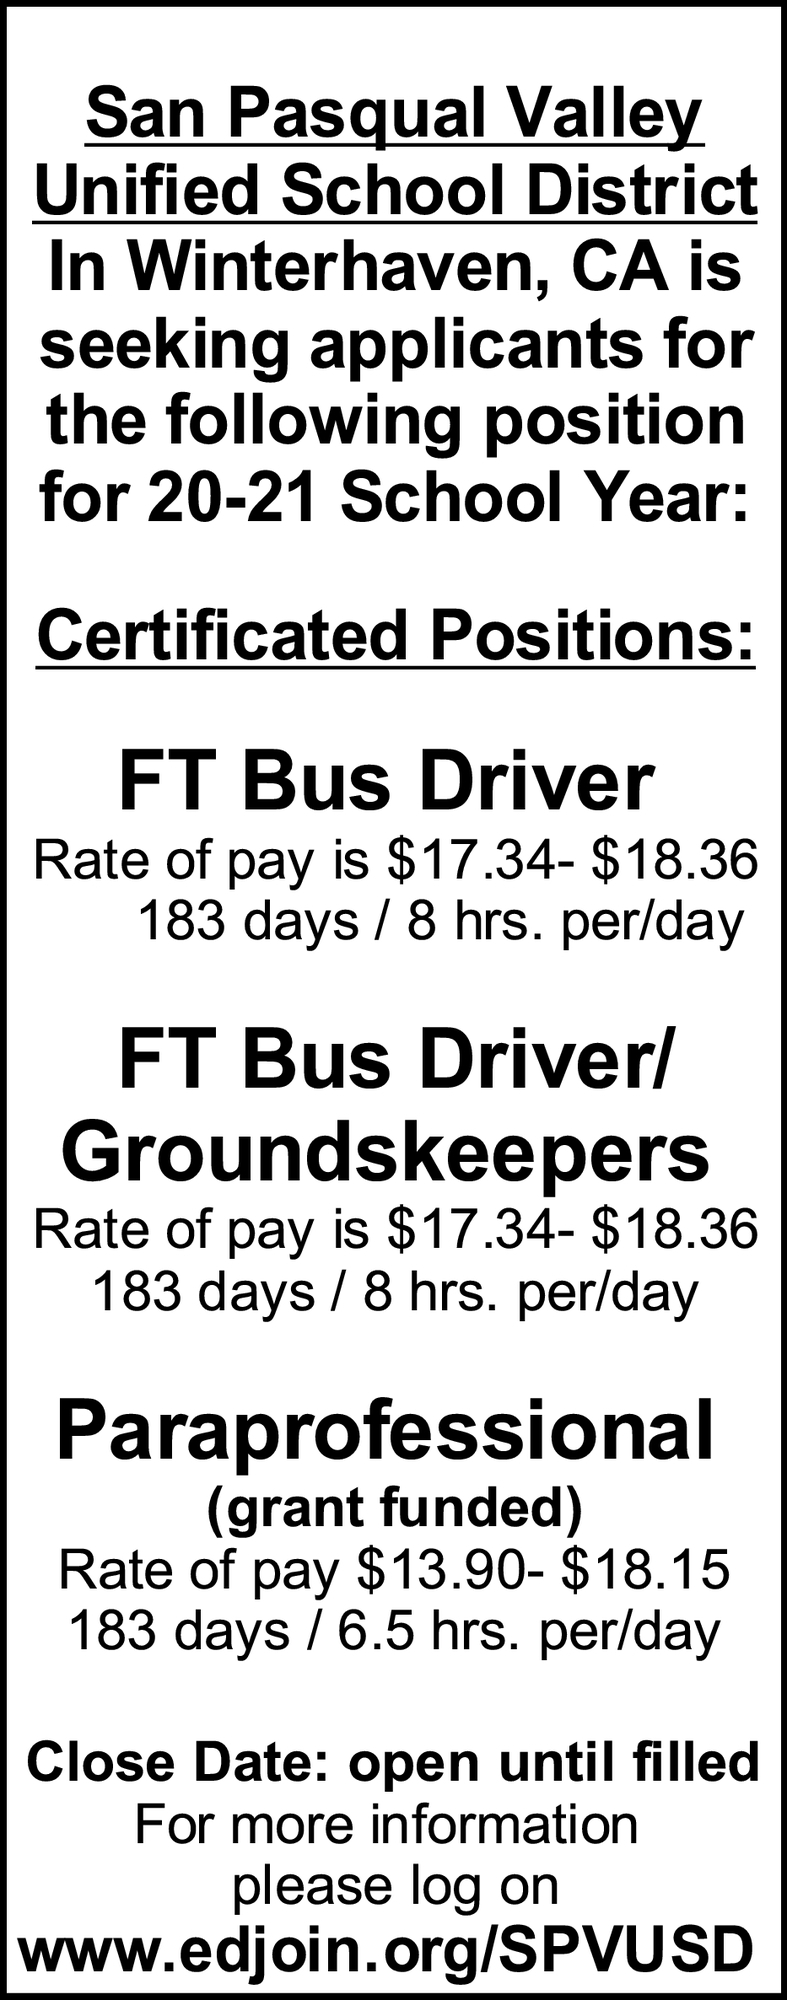 Bus Driver, Bus Driver/Groundskeepers, Paraprofessional